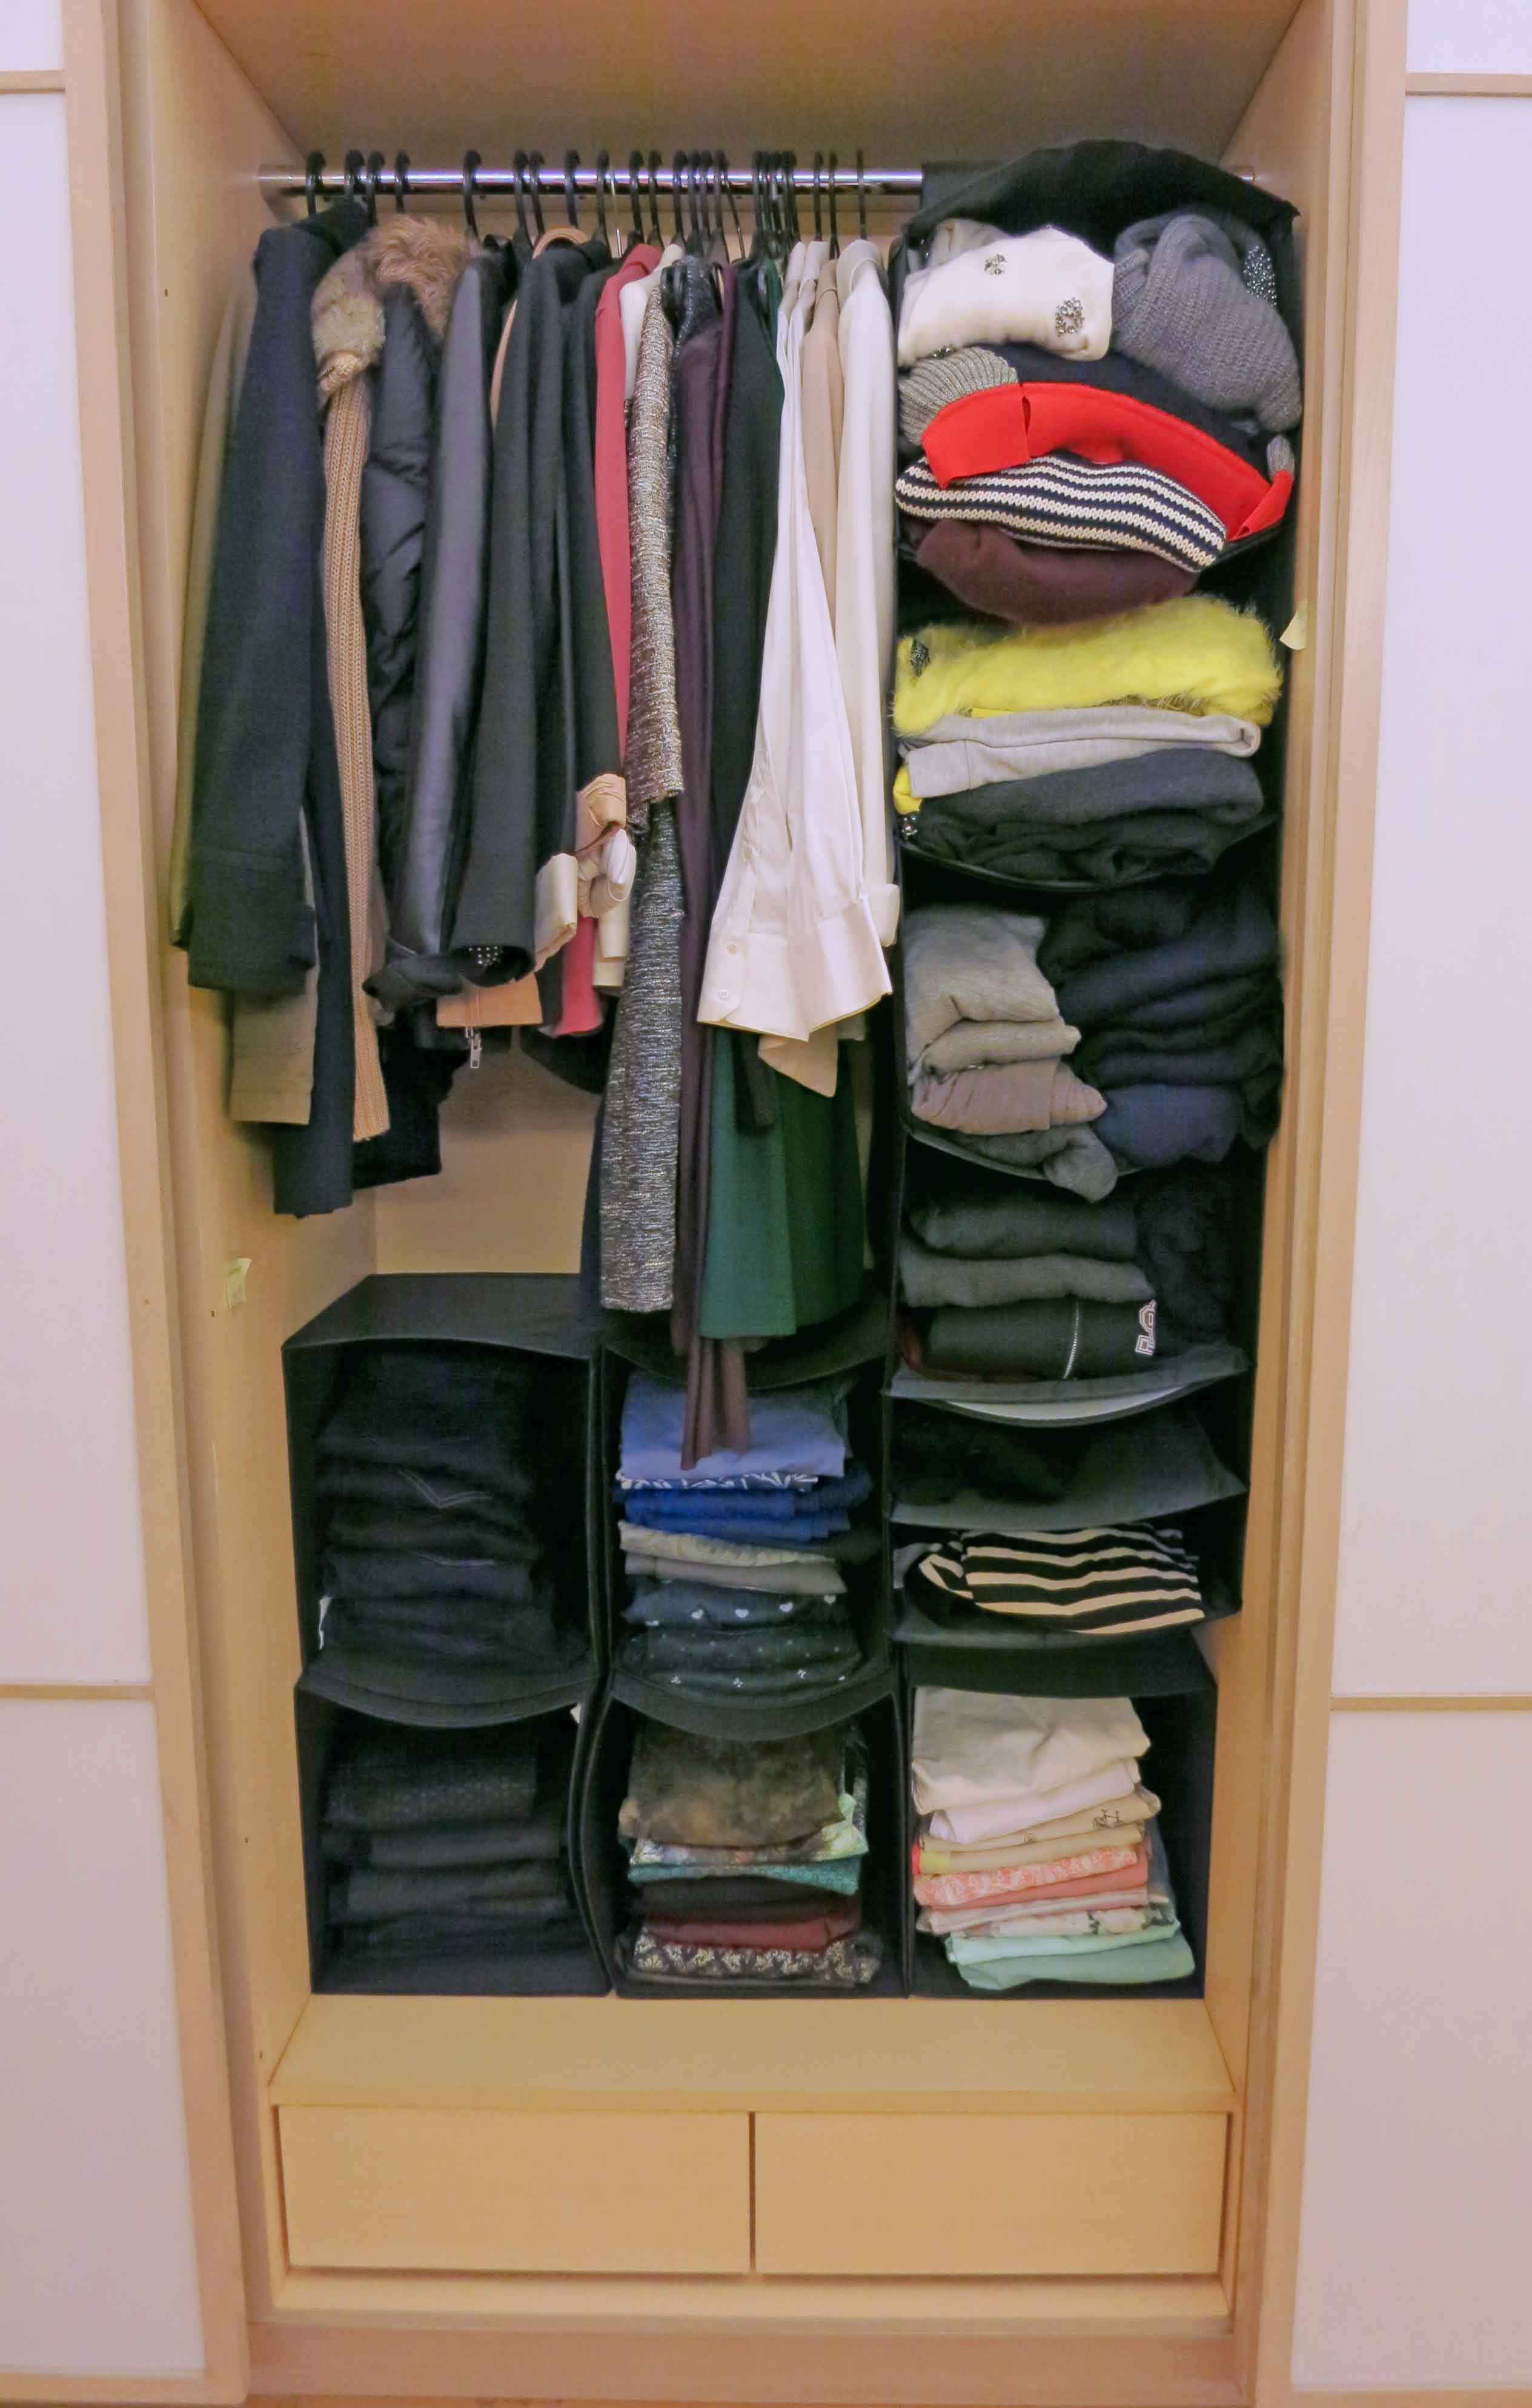 find cheap qty w deals get boxes guides storage quotations on moving uboxes bars shopping wardrobe fast